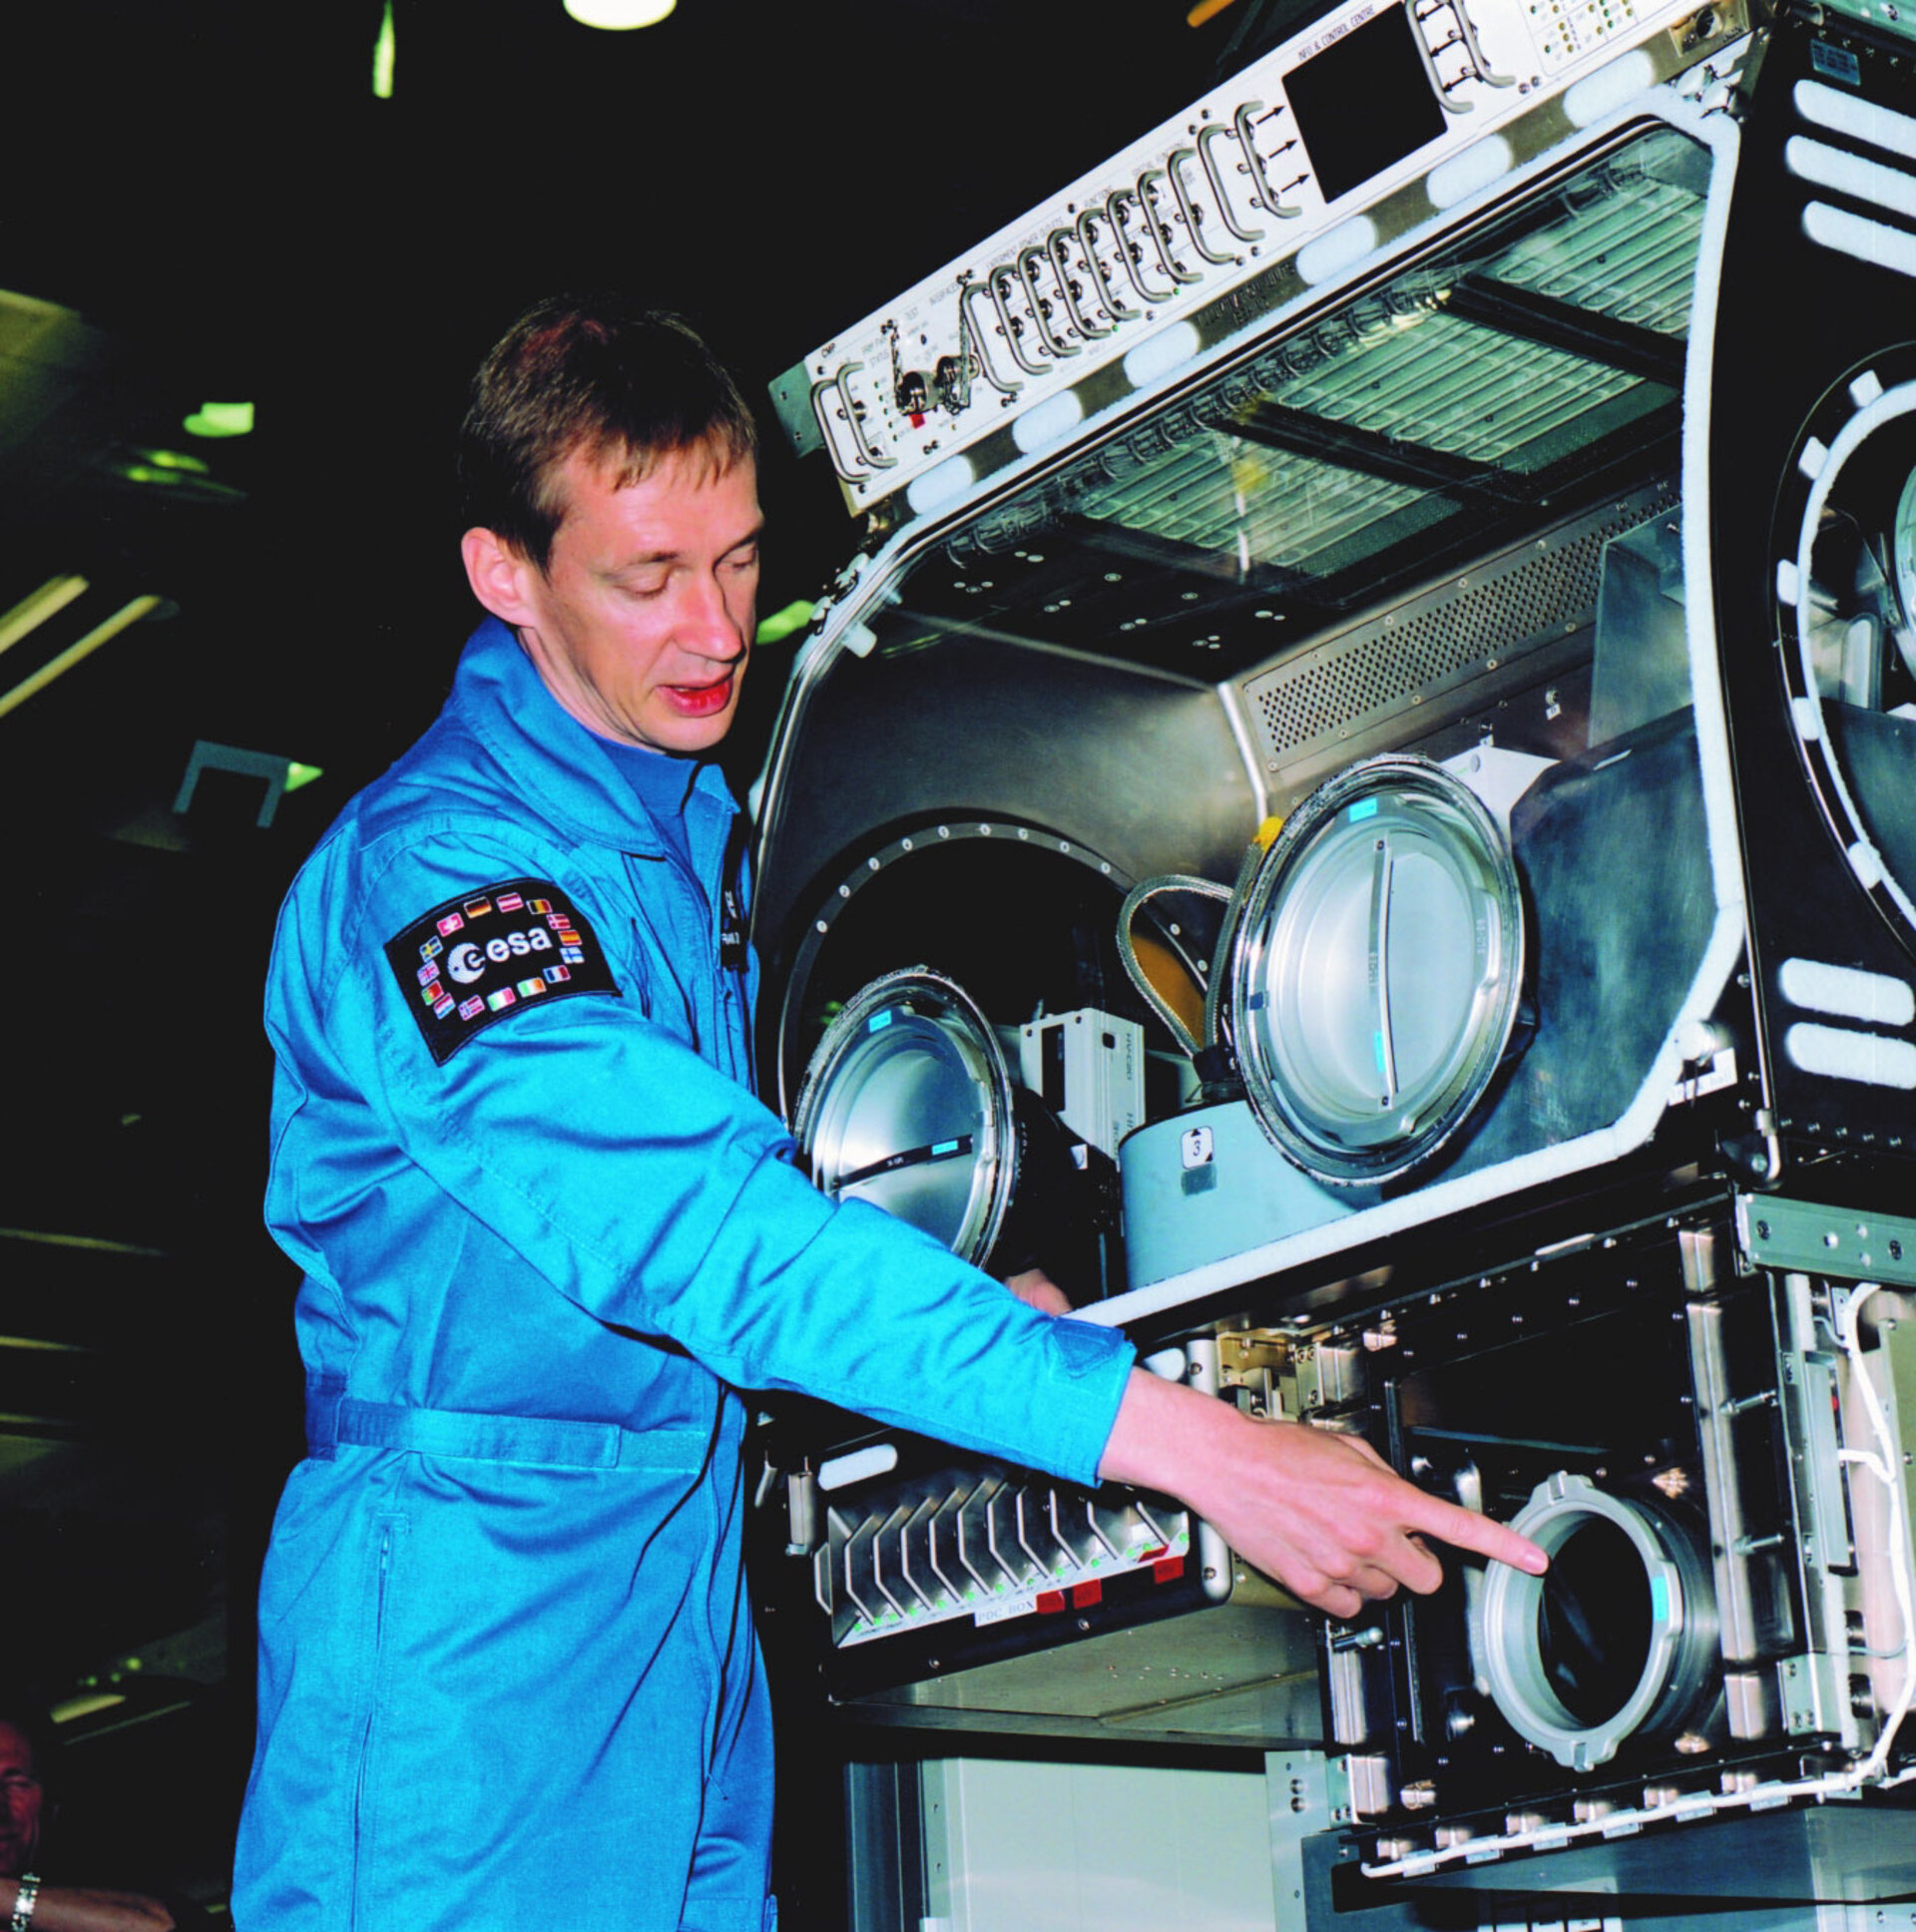 Frank De Winne will be the first ESA astronaut to use the newly installed Microgravity Science Glovebox facility